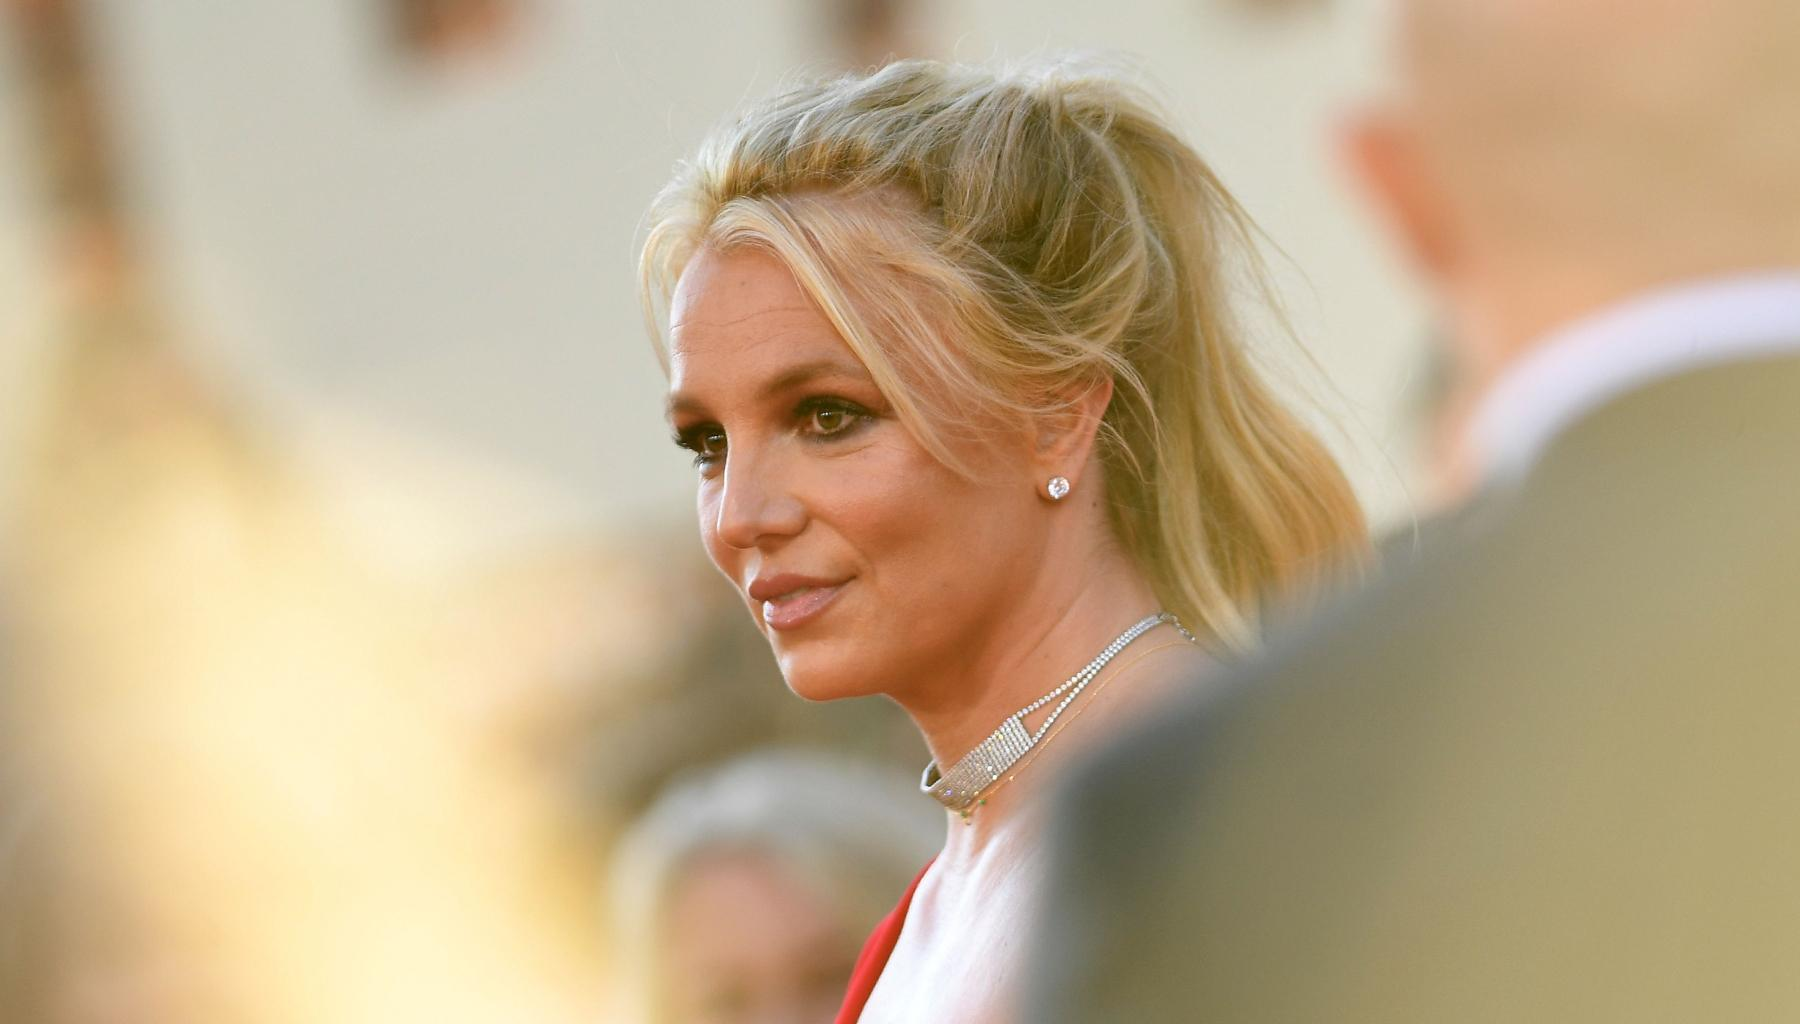 Britney Spears Says She Wants To Have A Baby But Her Father Won't Let Her In First Ever Public Court Testimony!